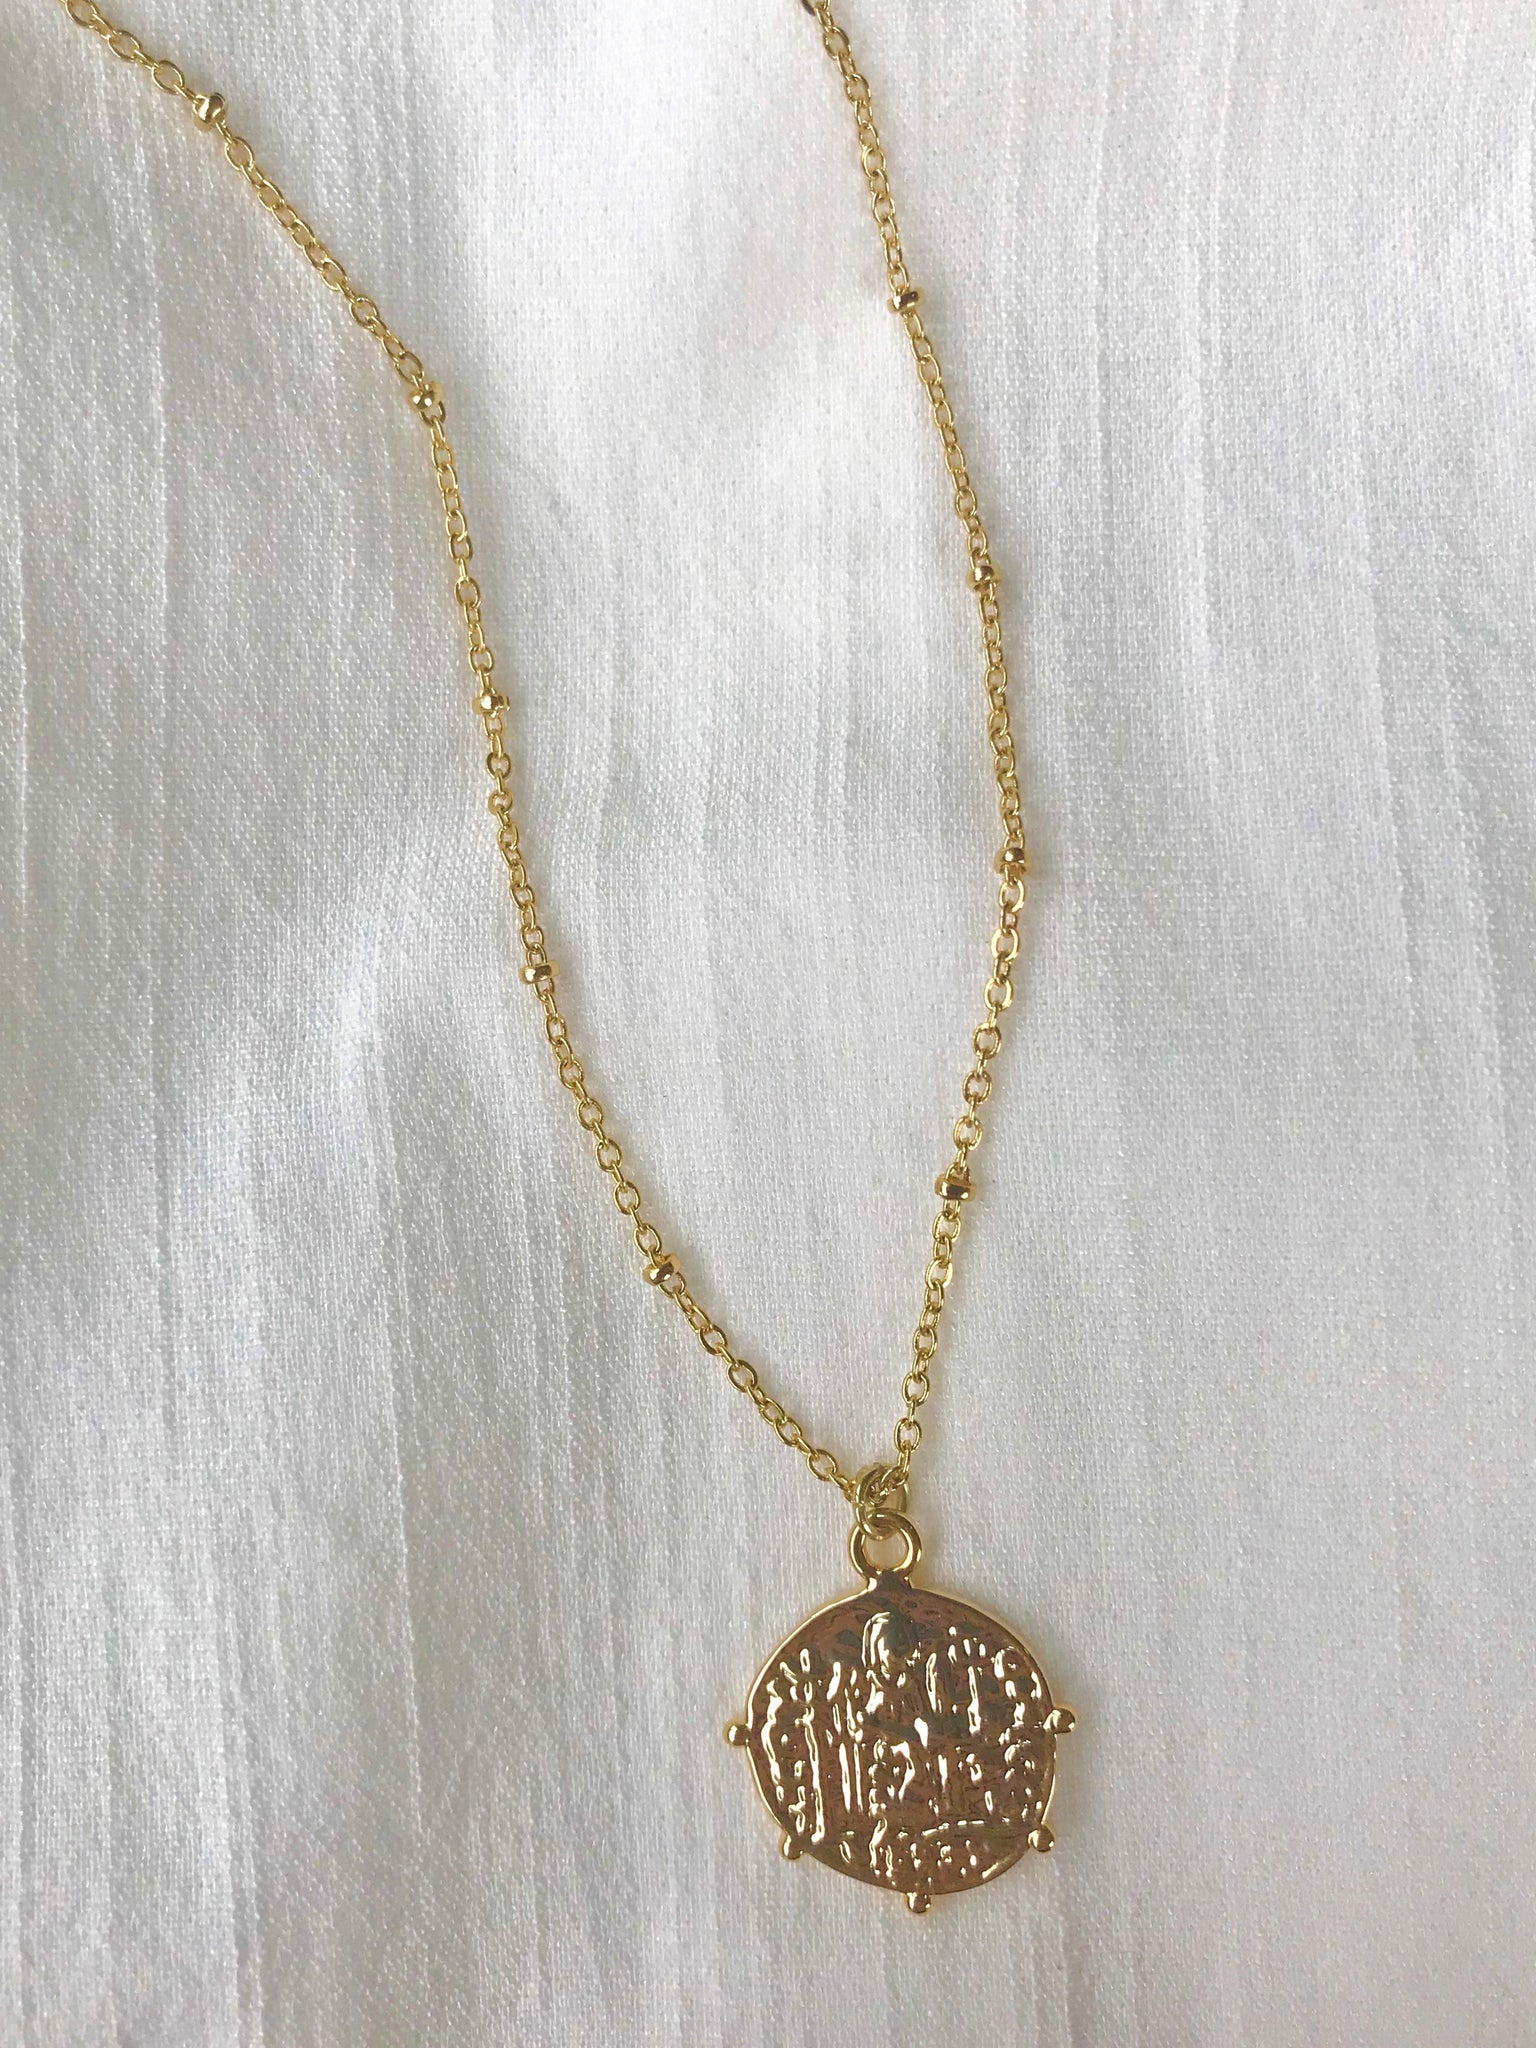 Chaney Mirabella Coin Necklace